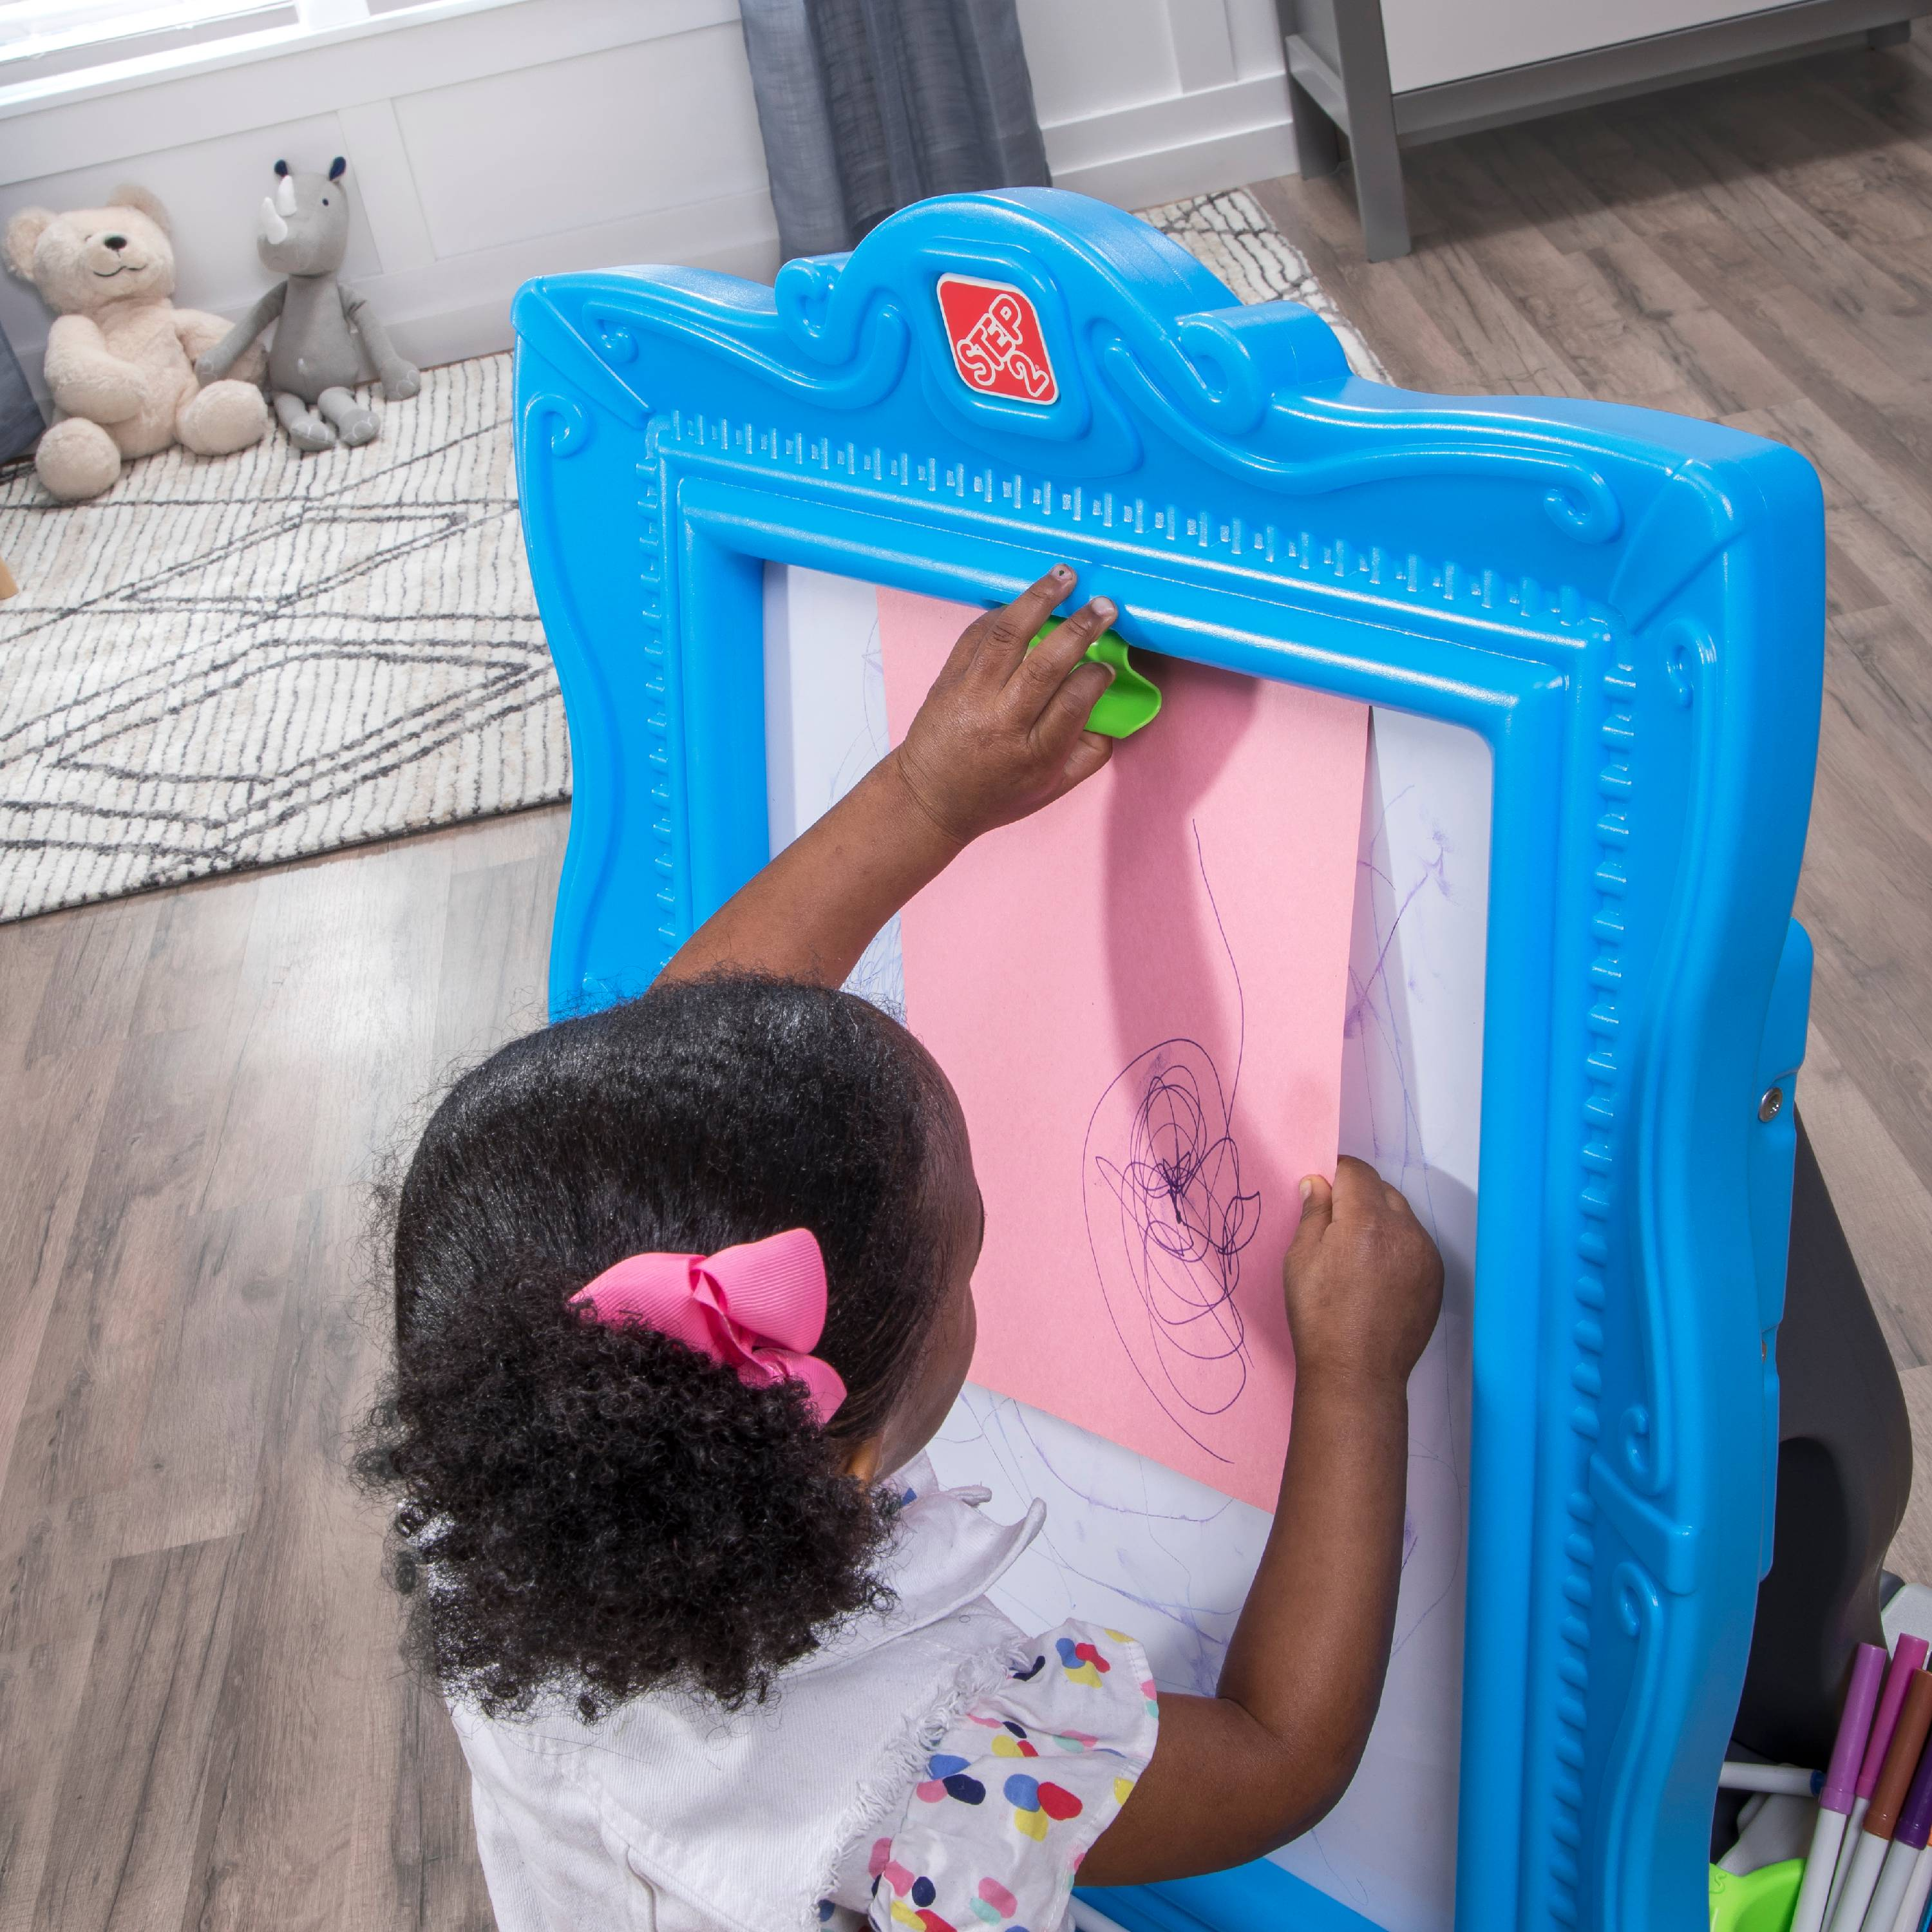 Details About Step2 Masterpiece Detachable Easel Coloring Art Educational Toy For Kids Blue